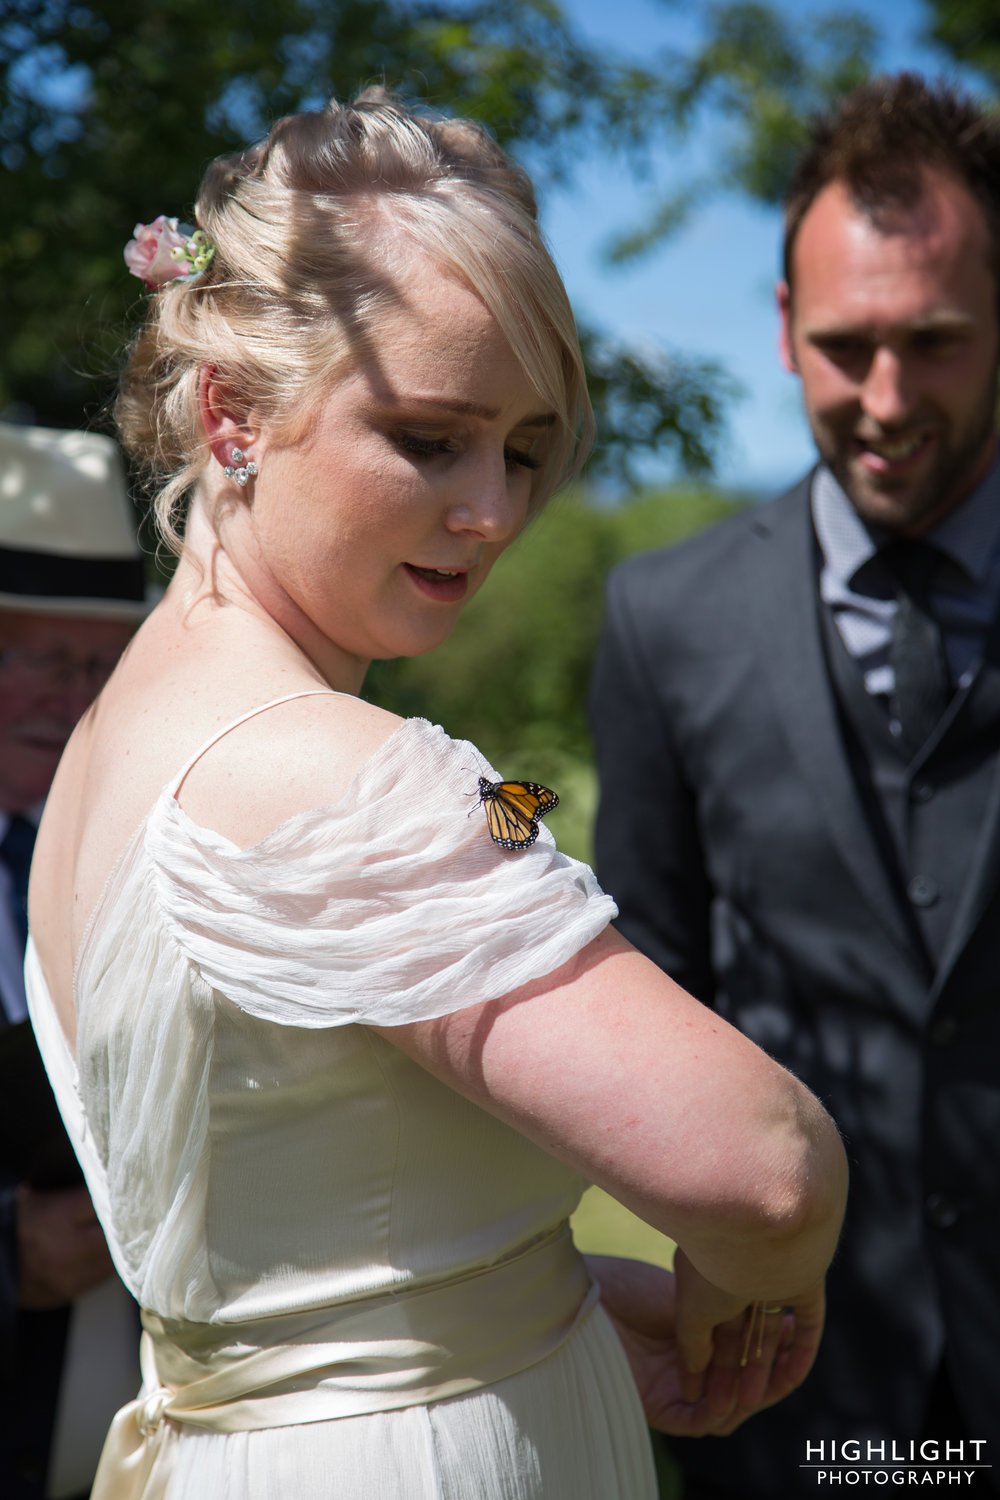 rose-johnny--butterfly-highlight-wedding-photography-palmerston-north-manawatu